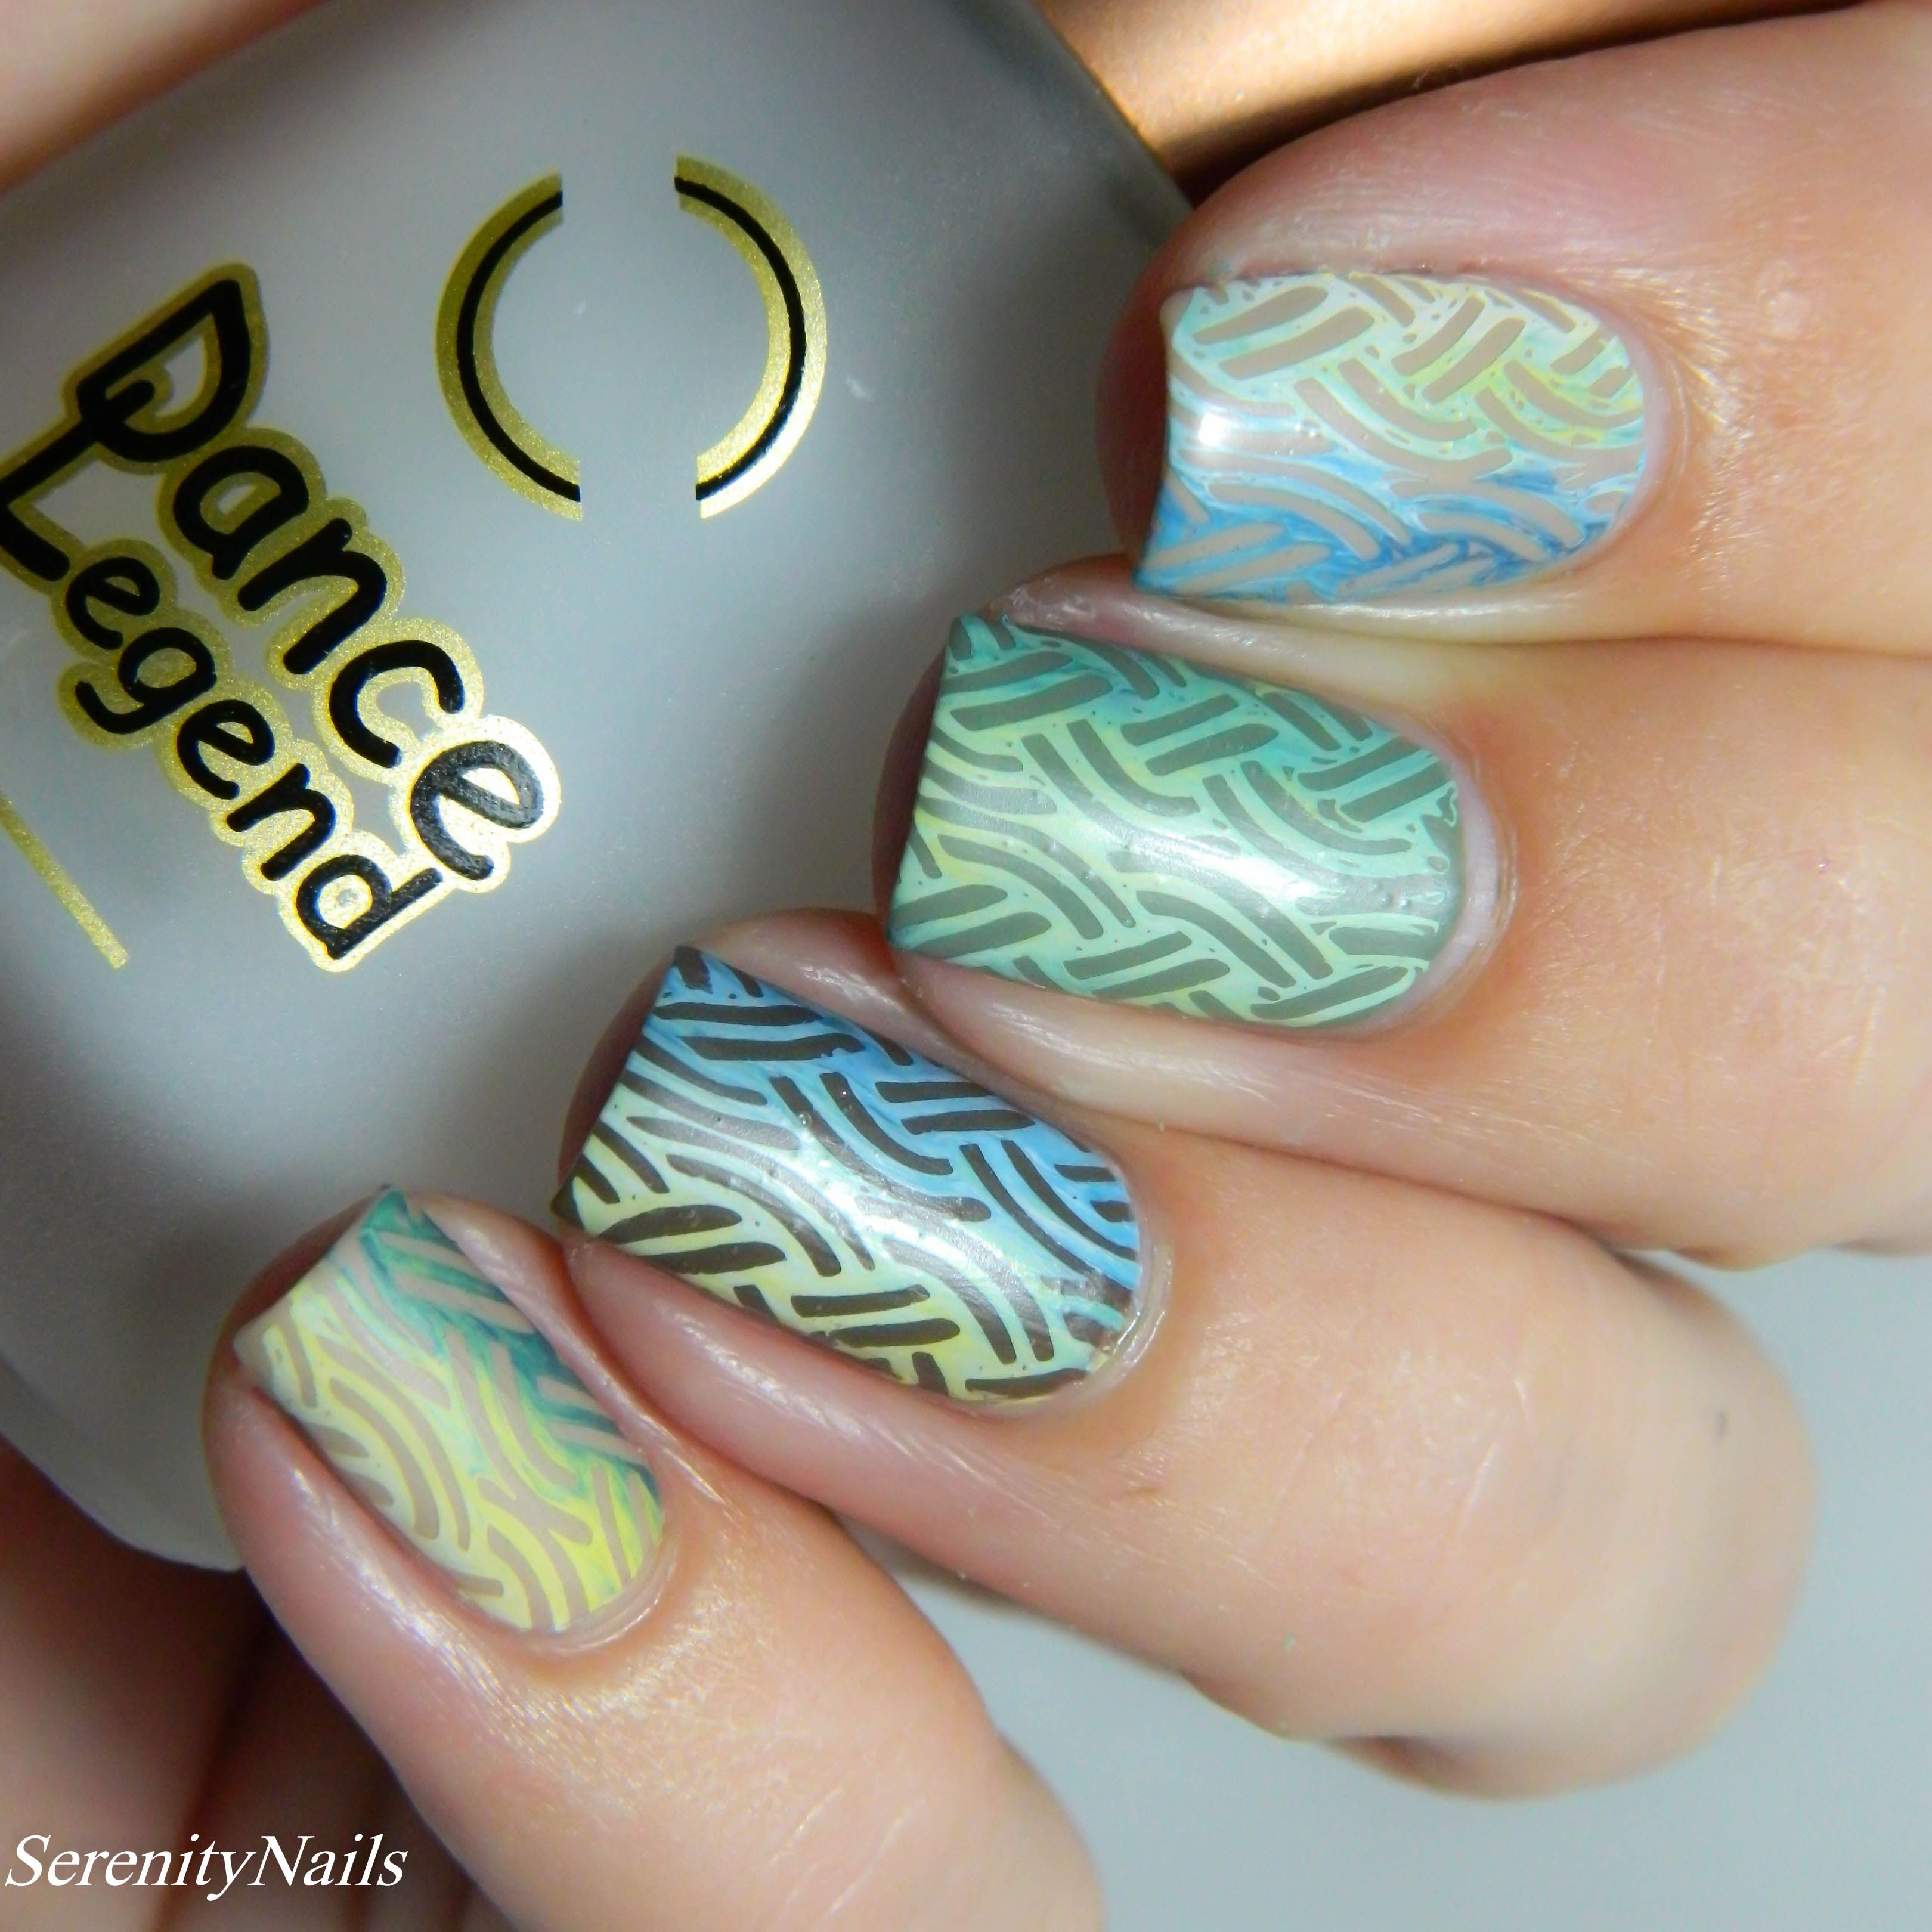 "Foto: Reprodução / <a href=""http://www.serenitynails.com.au/2015/09/31-day-challenge-round-up-days/"" target=""_blank"">Serenity Nails</a>"